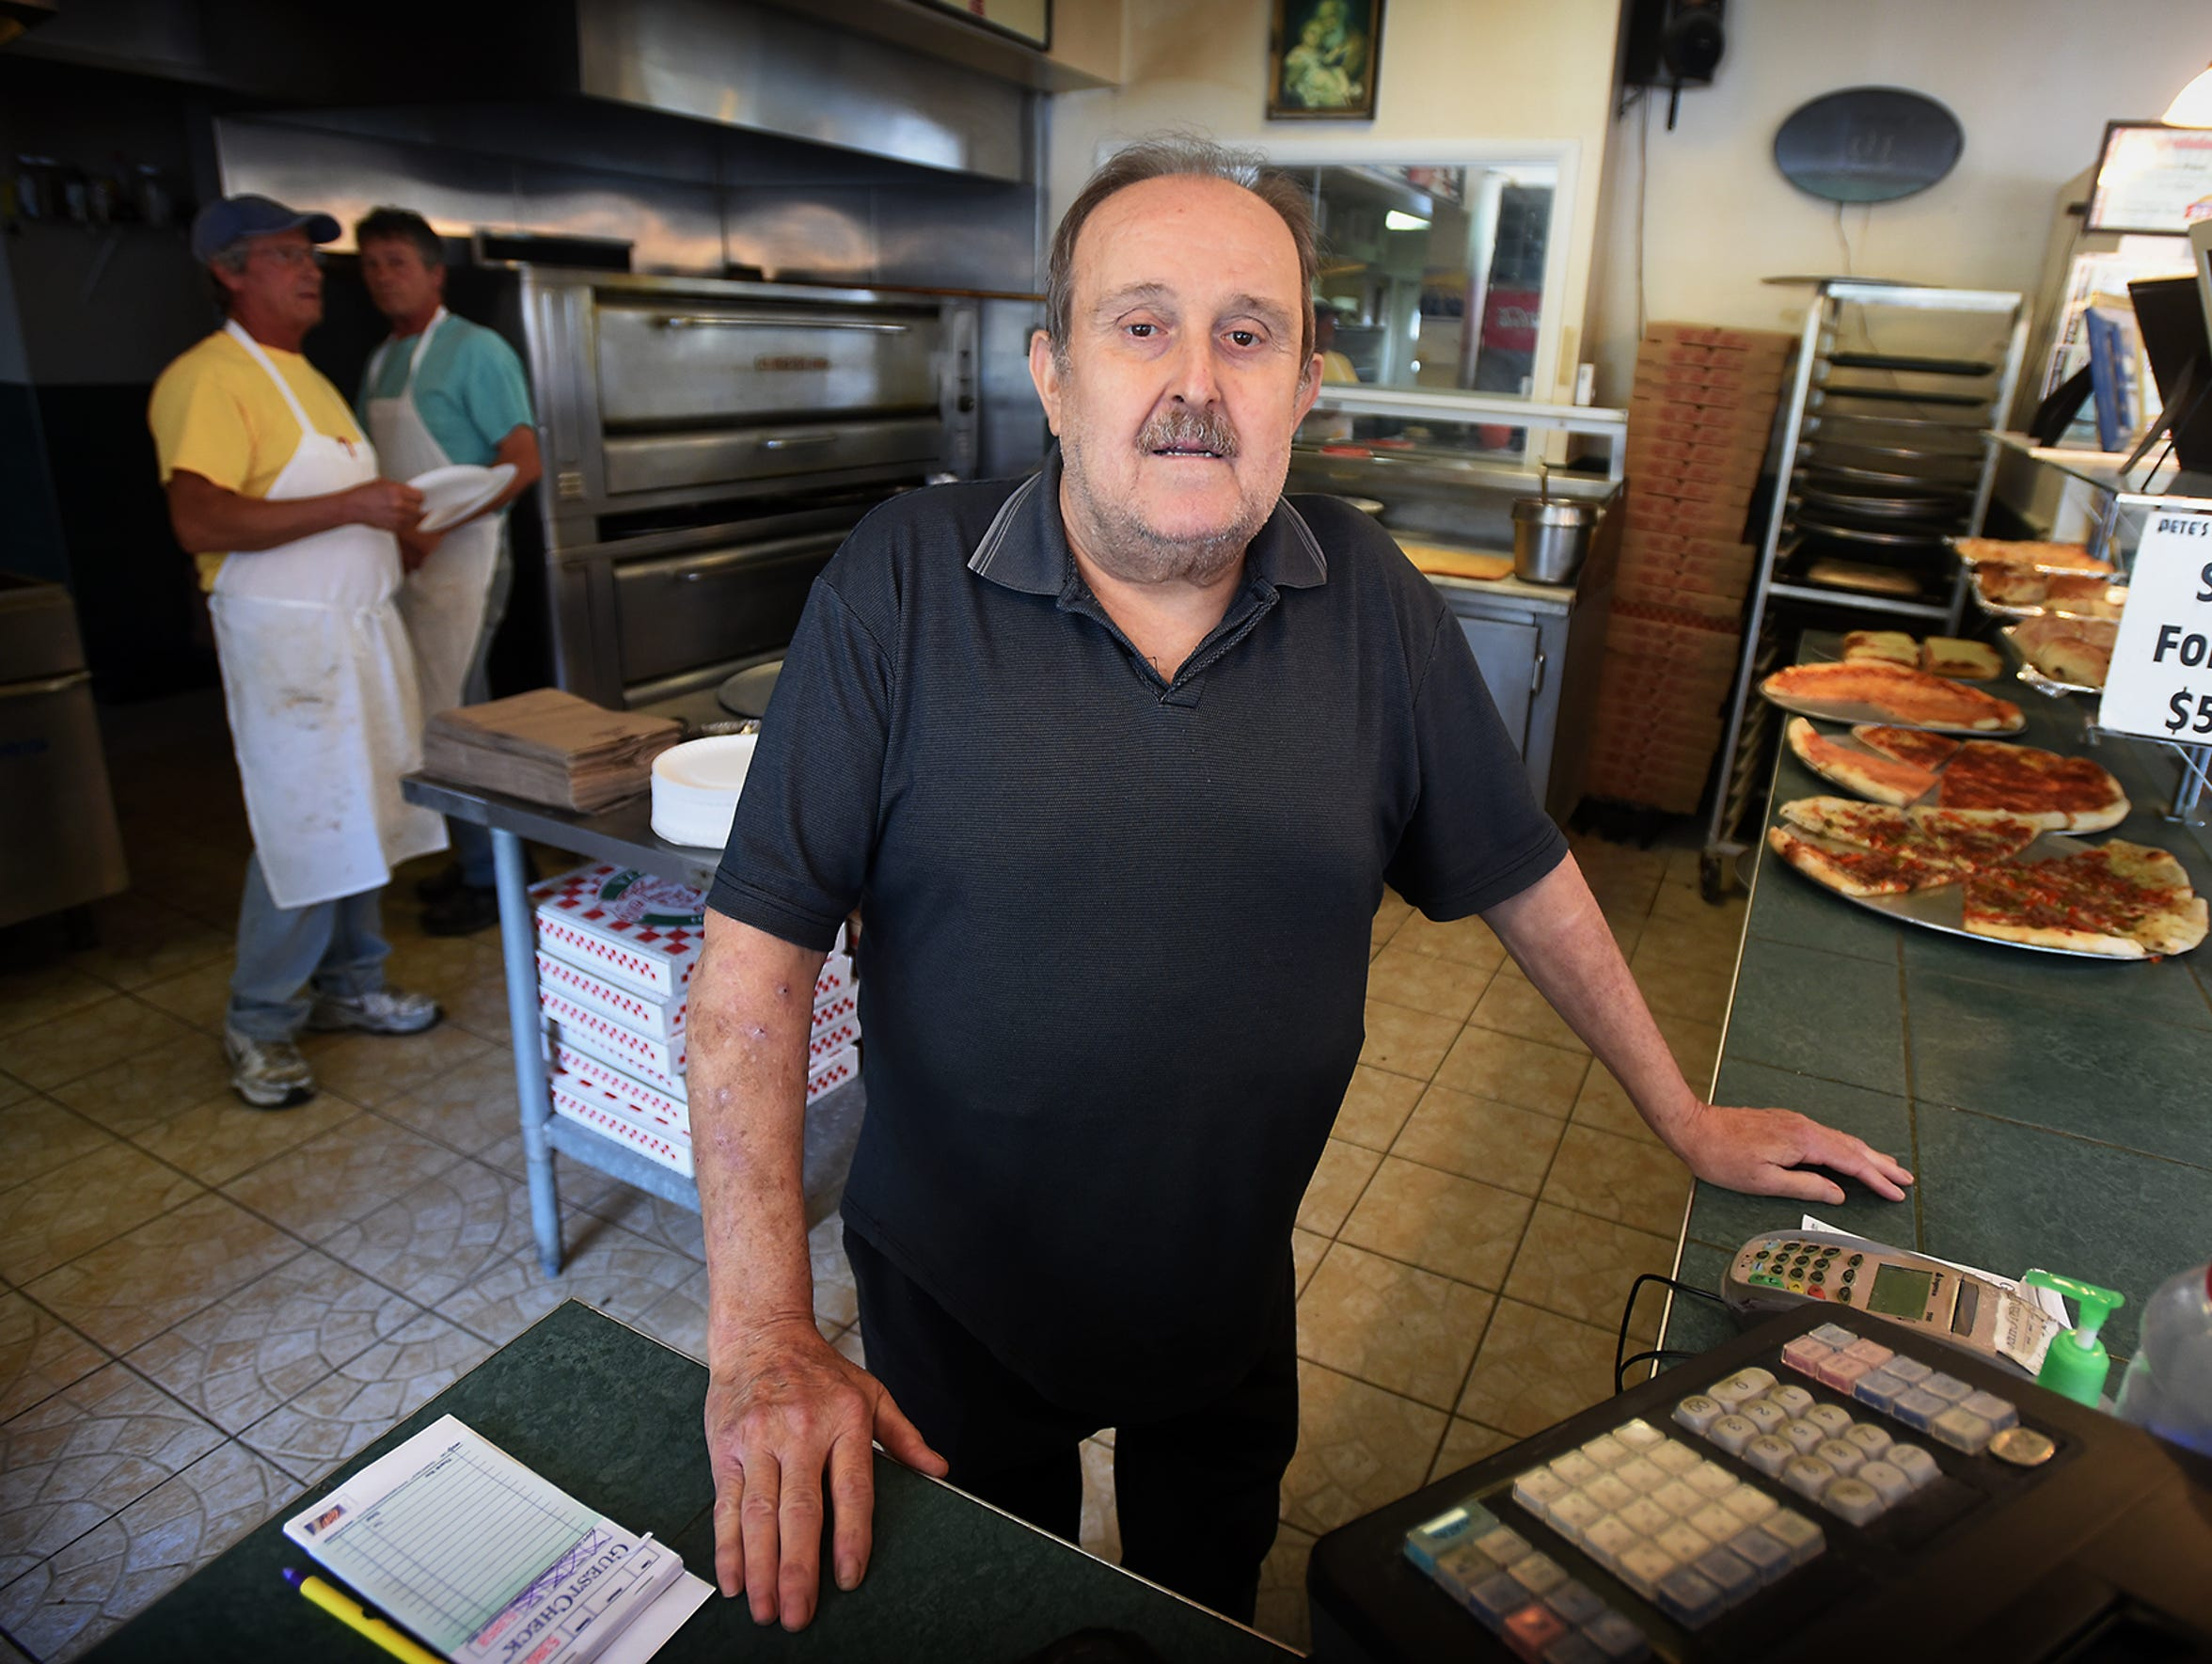 Pete Martorana, the owner of Pete's Pizza, opened his